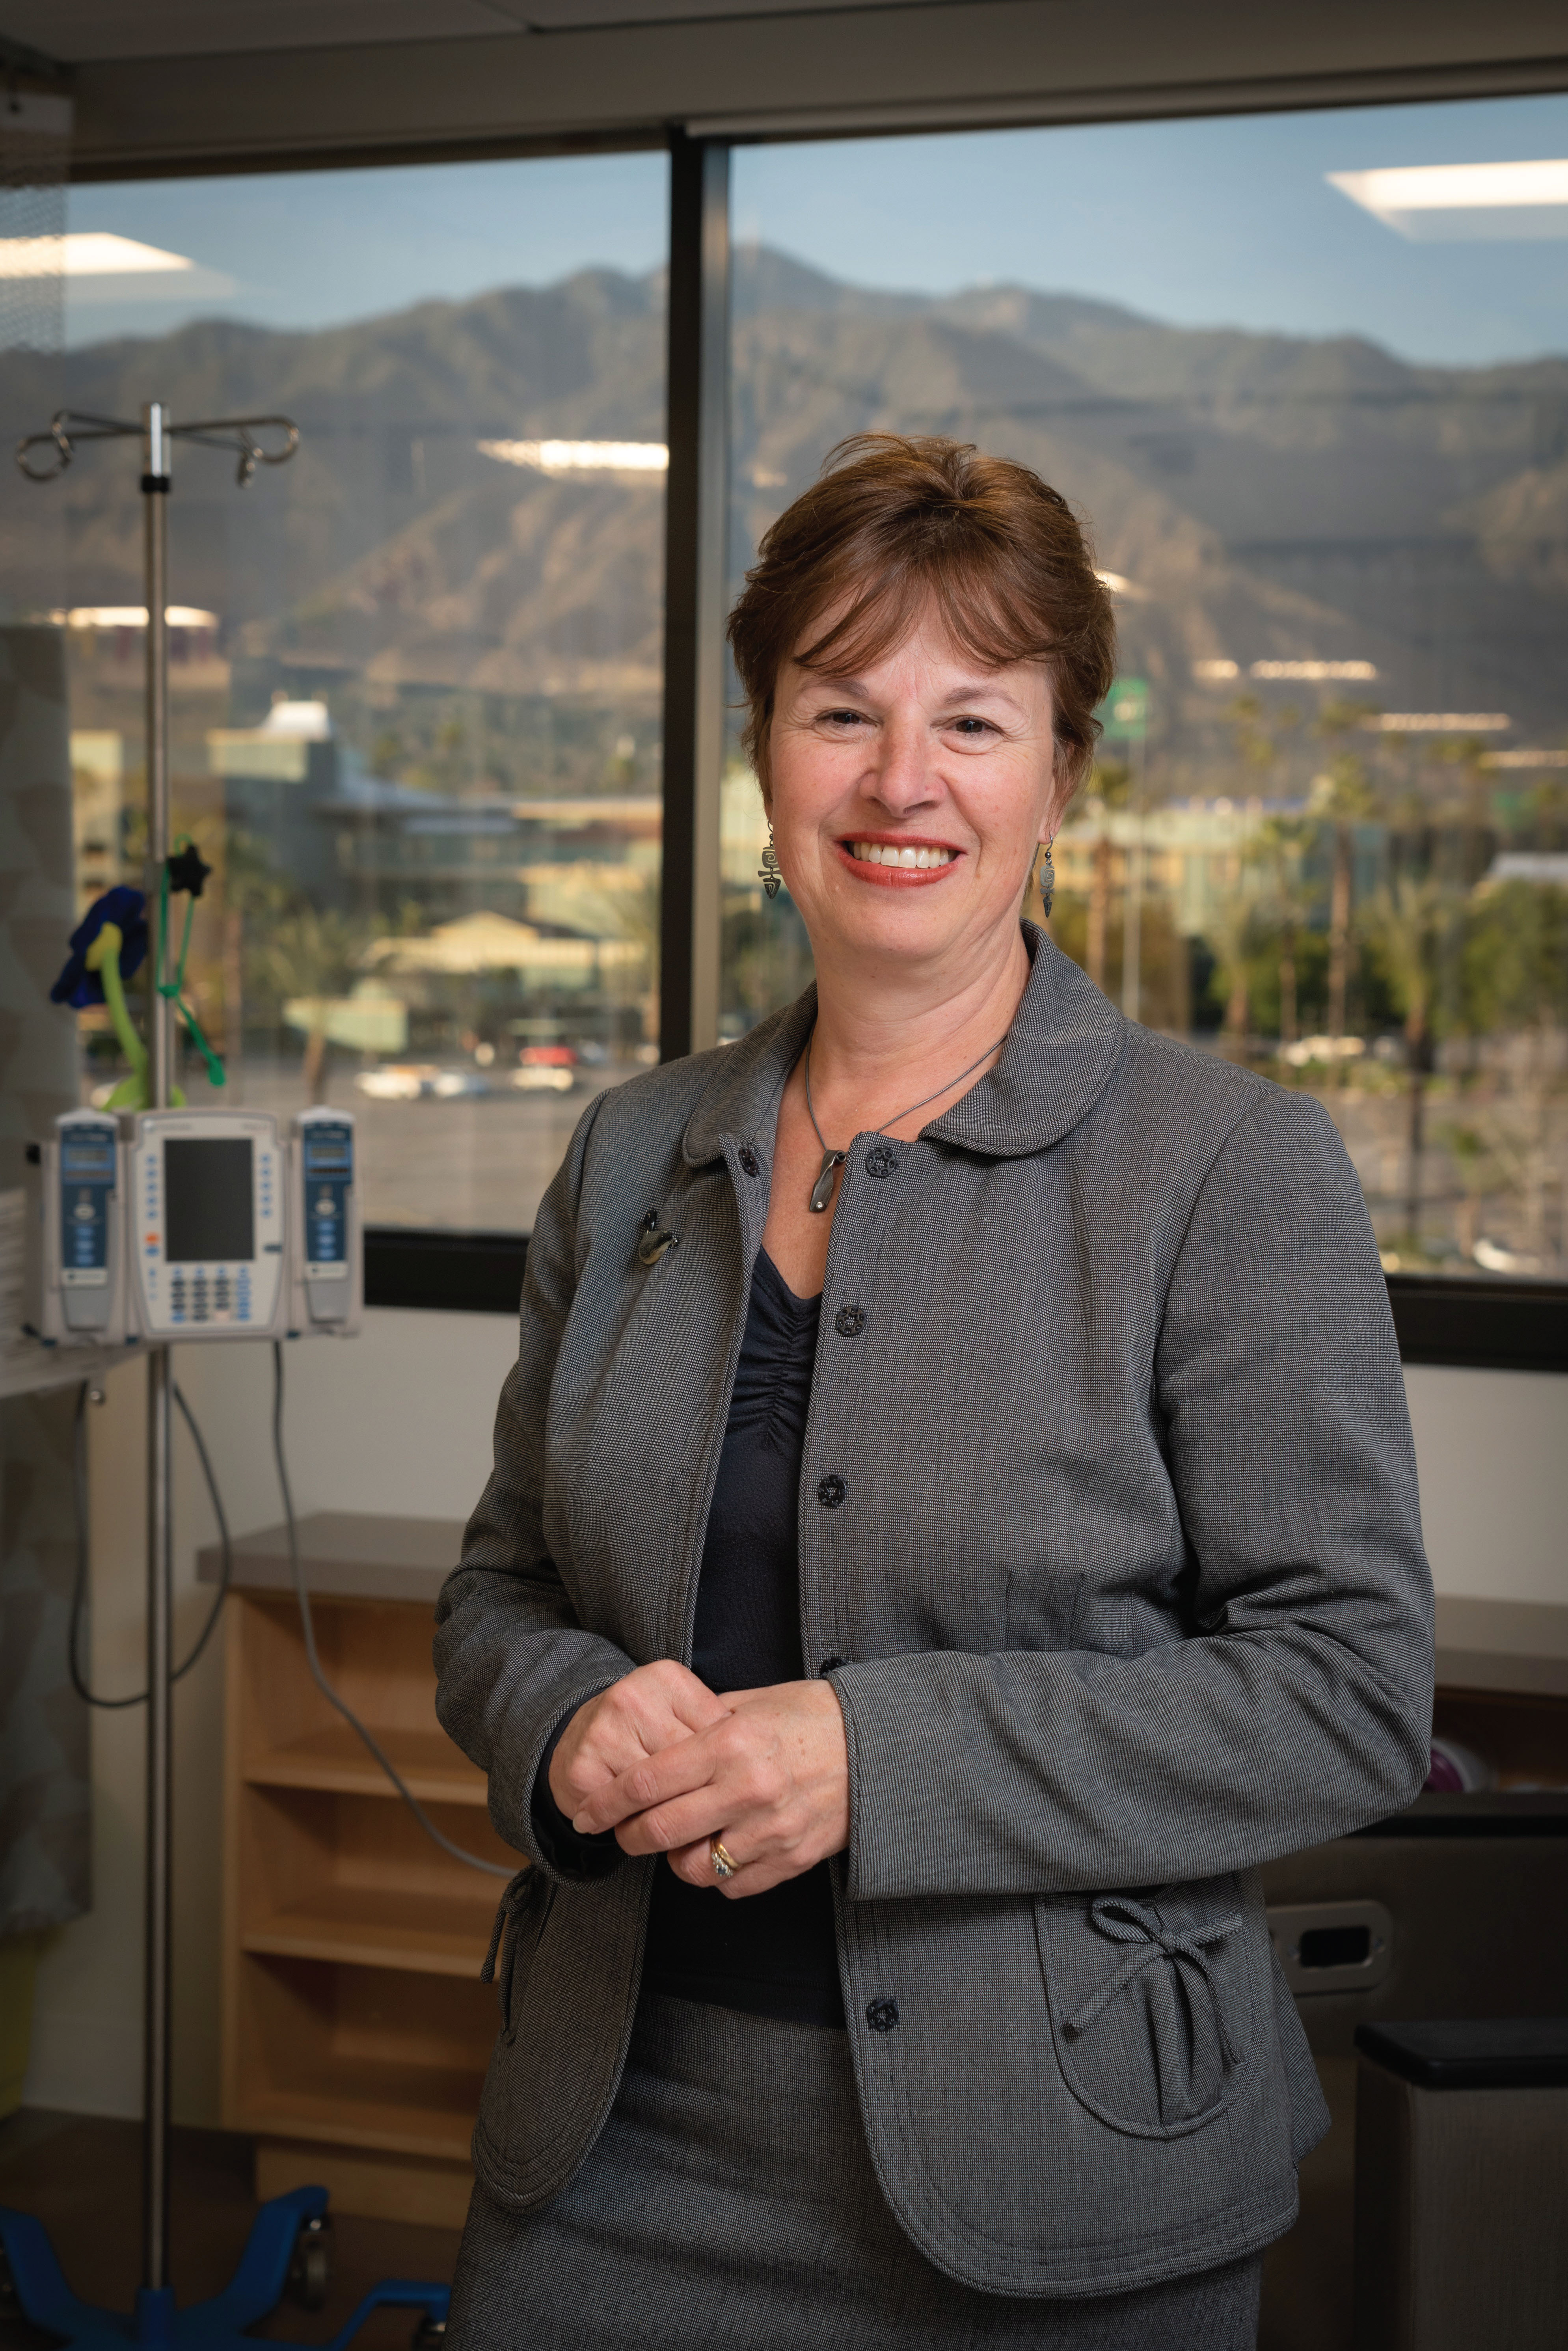 Meet Your ONS Leader: Anne M. Ireland, MSN, RN, AOCN®, CENP